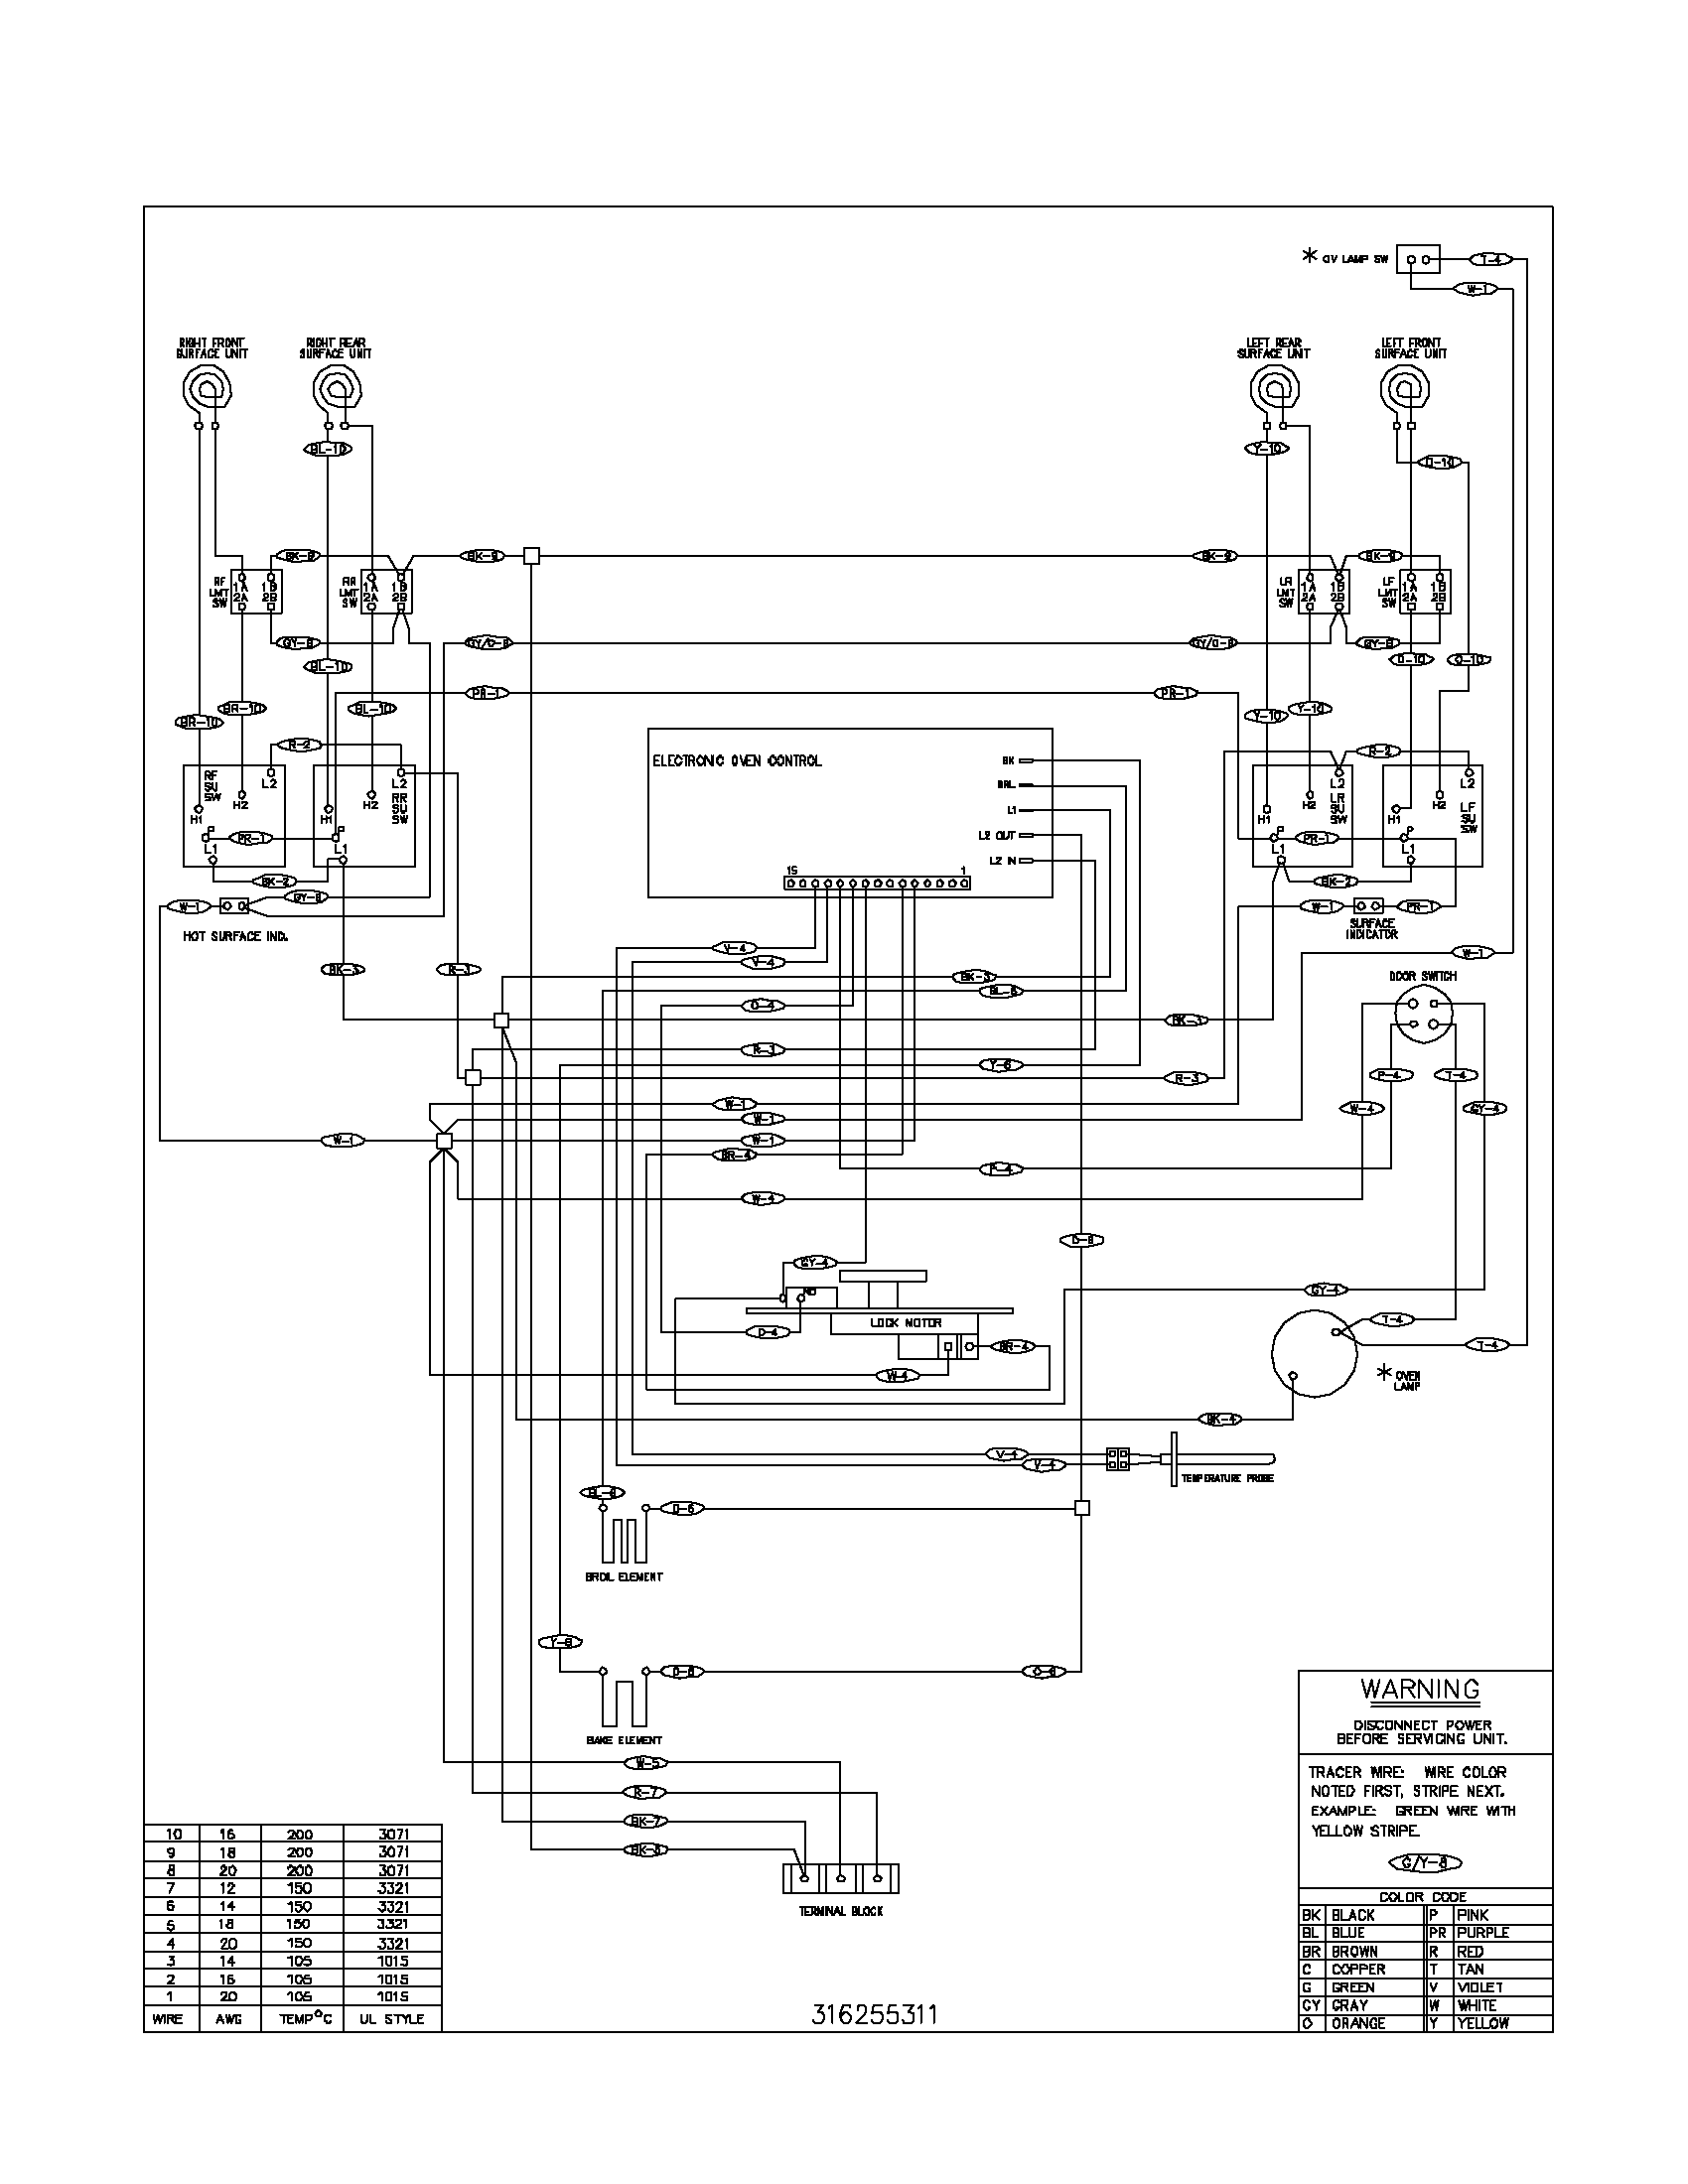 1980-tpgs-805-scooter-wiring-diagram-3  Cc Taotao Ignition Wiring Diagrams on